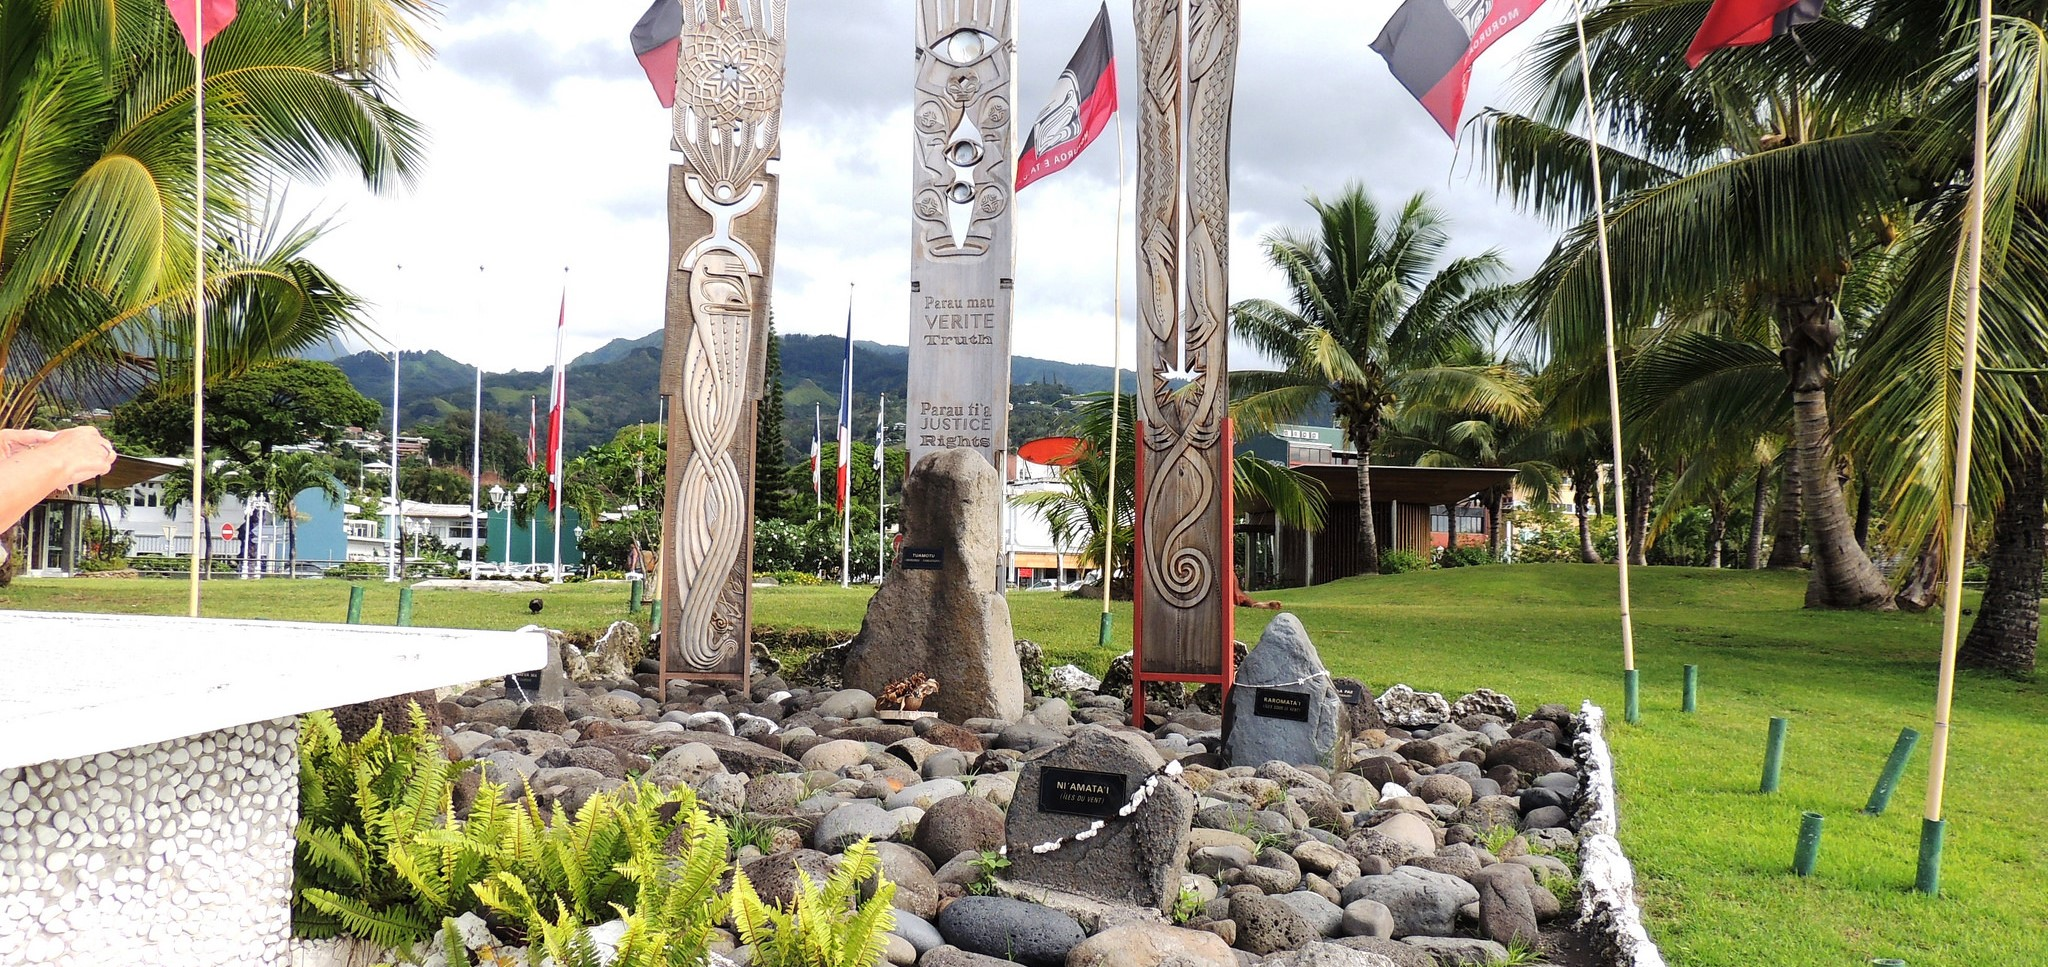 Monument in Papeete dedicated to the victims of the French Nuclear tests (Photo: Harry and Rowena Kennedy/Flickr)